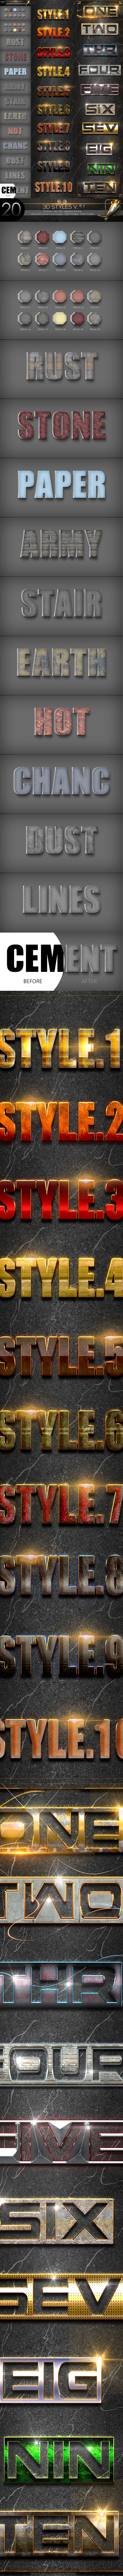 30 Bundle 3D Text Styles D51-D53 - Styles Photoshop